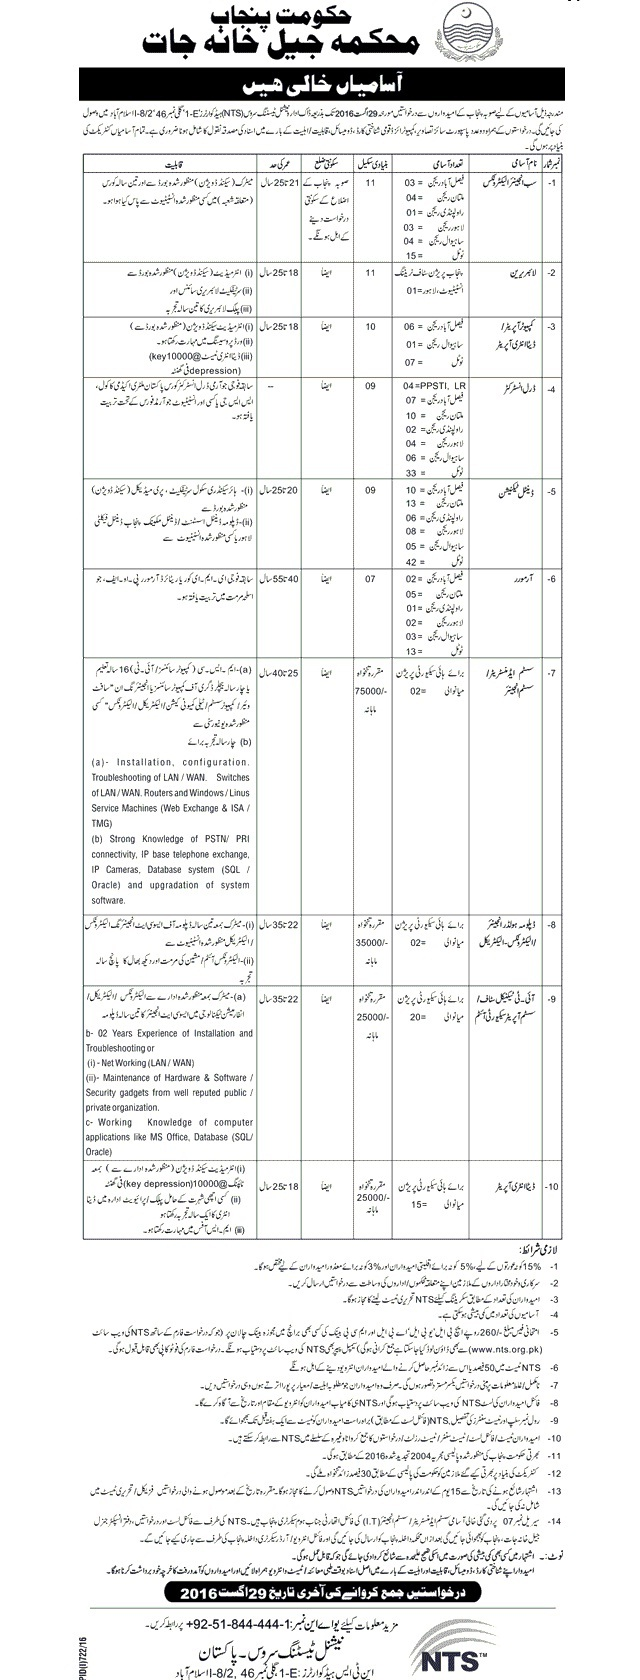 Jobs in Punjab Jail Khanajaat Prisons Department - Sun-Engineer, Computer Operator, Drill Instructor, Dental Technician